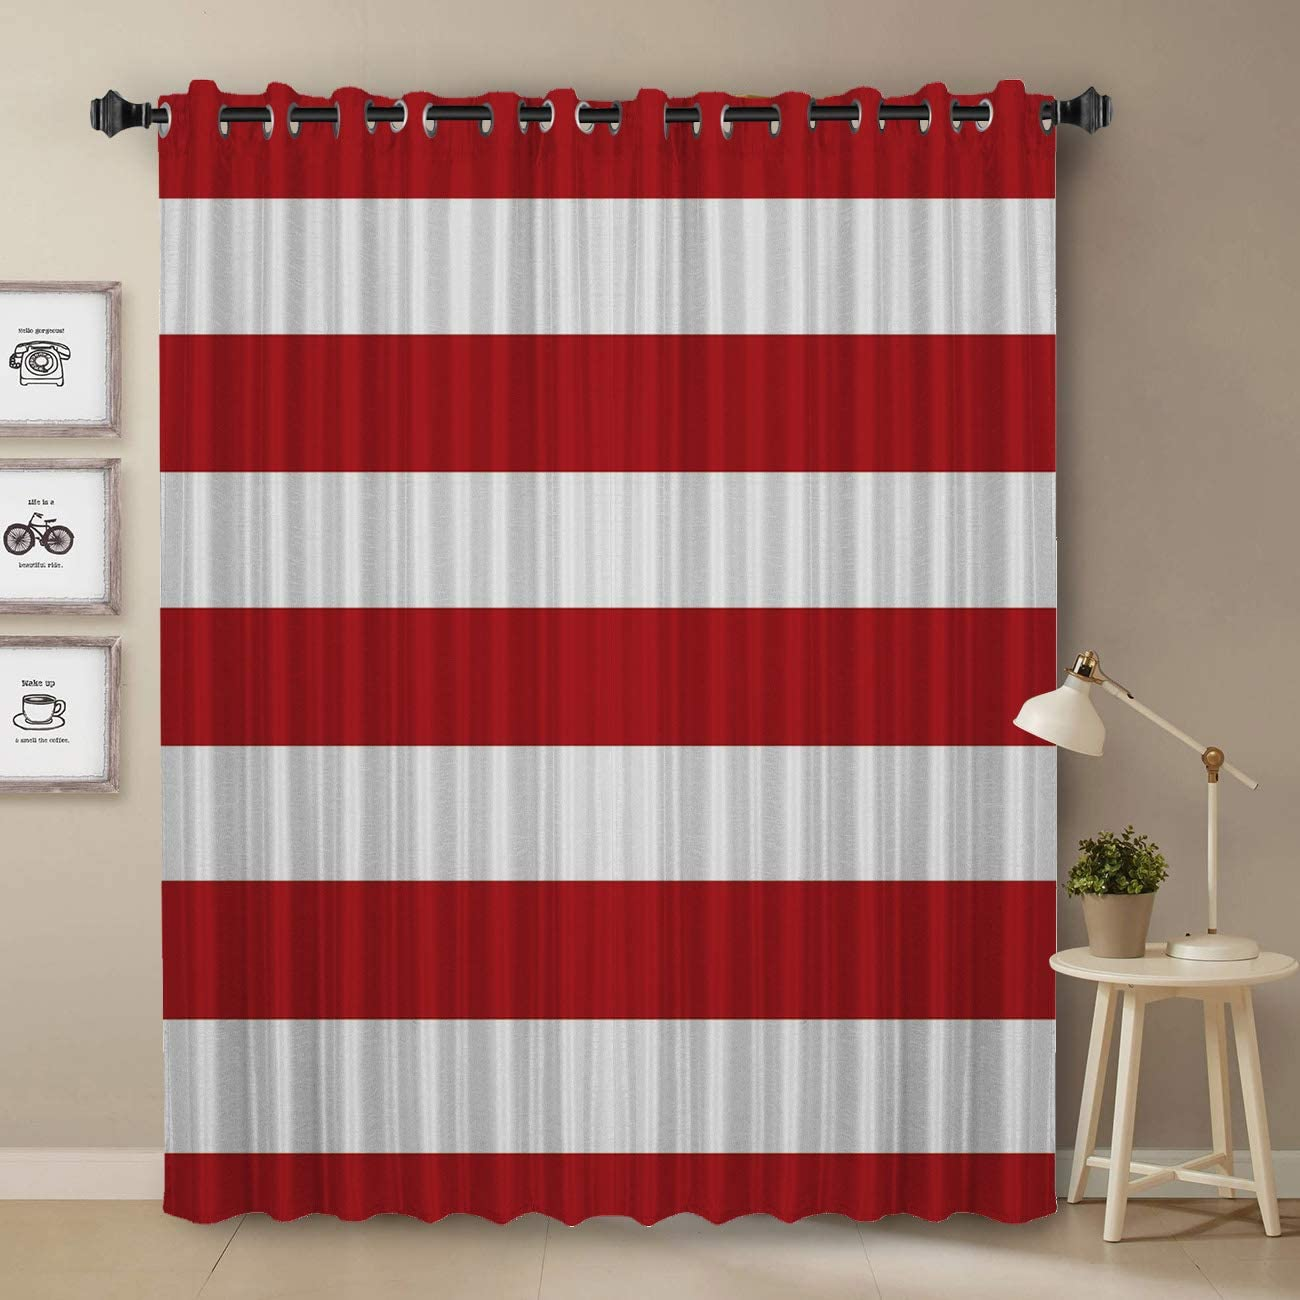 Window Curtains Treatments 2 Panels Set, Firefighter Red Line USA Flag Privacy Drapes Curtain for Bedroom Living Room Sliding Glass Door Decor Patriotic Fireman Black with Red Stripe 52 96in 2